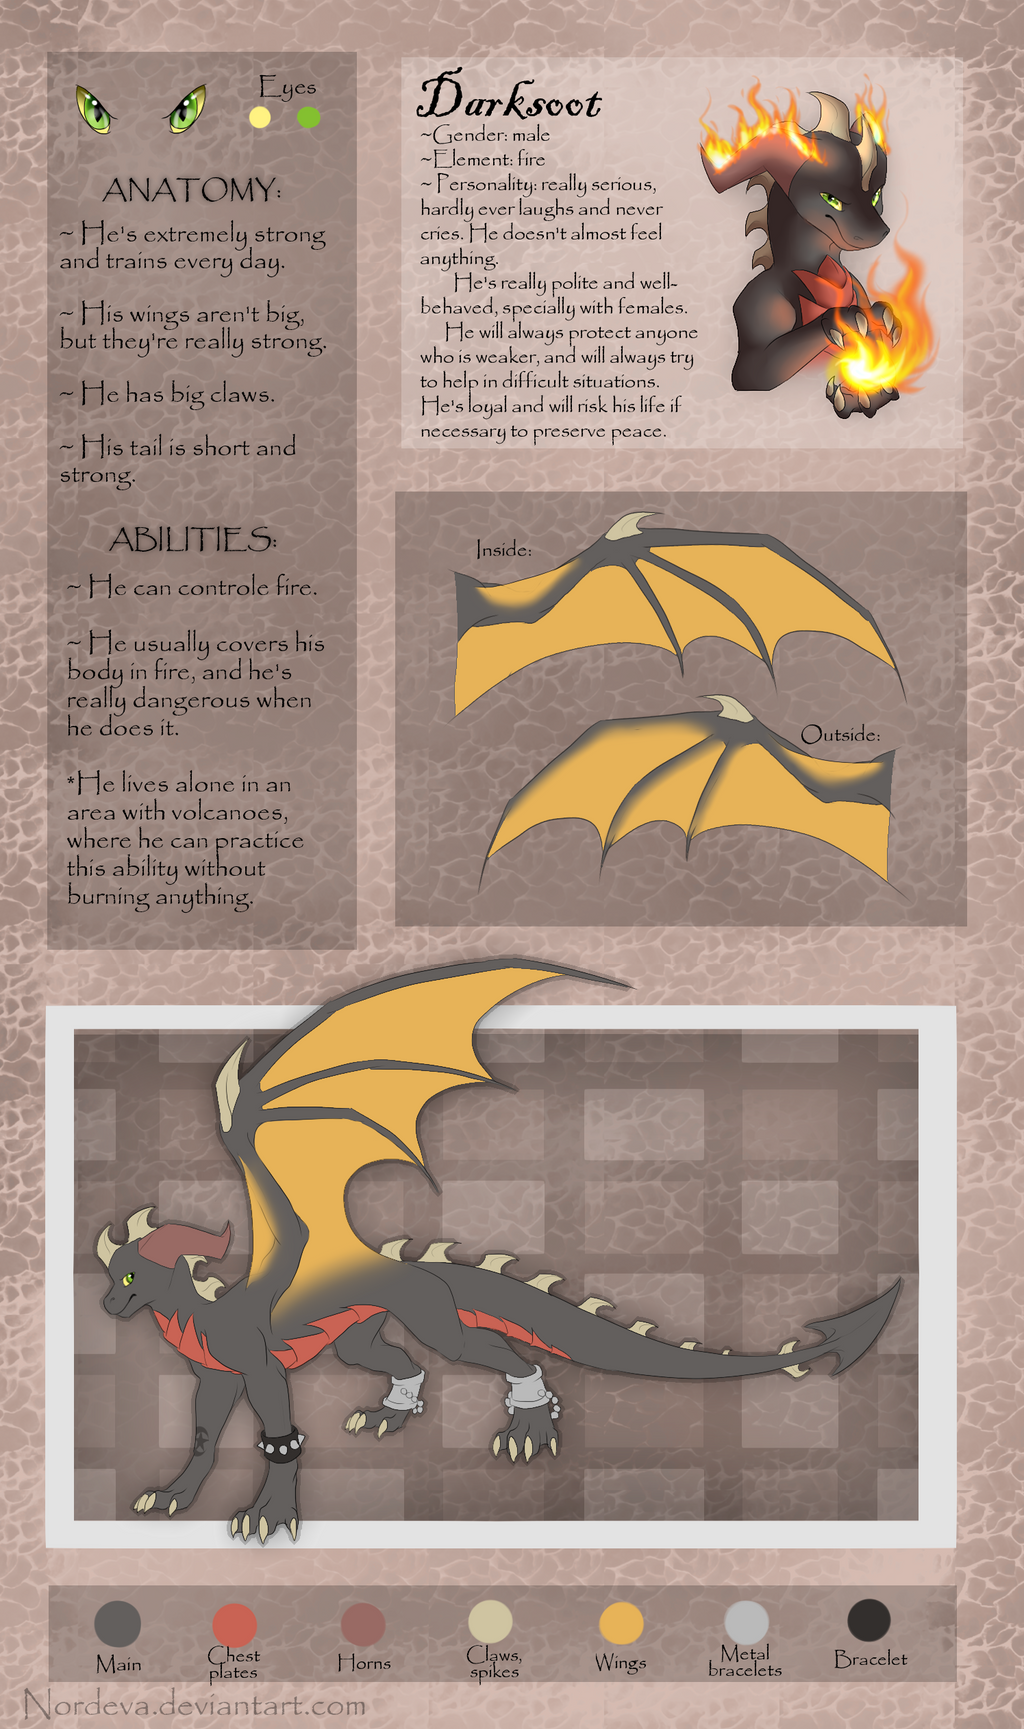 Darksoot - ref sheet by Nordeva